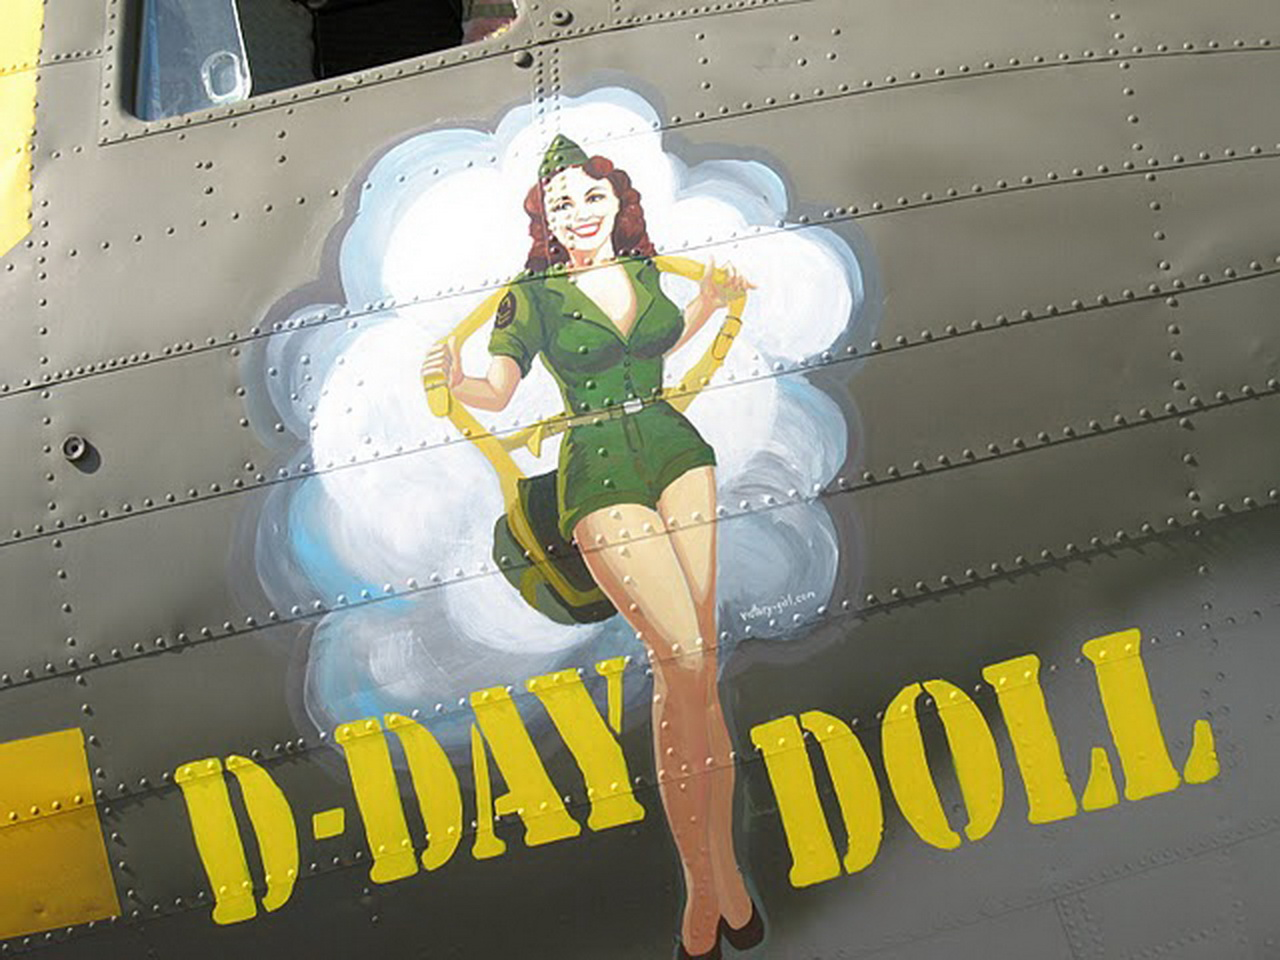 C-53 Aircraft D-day Doll aircraft nose art